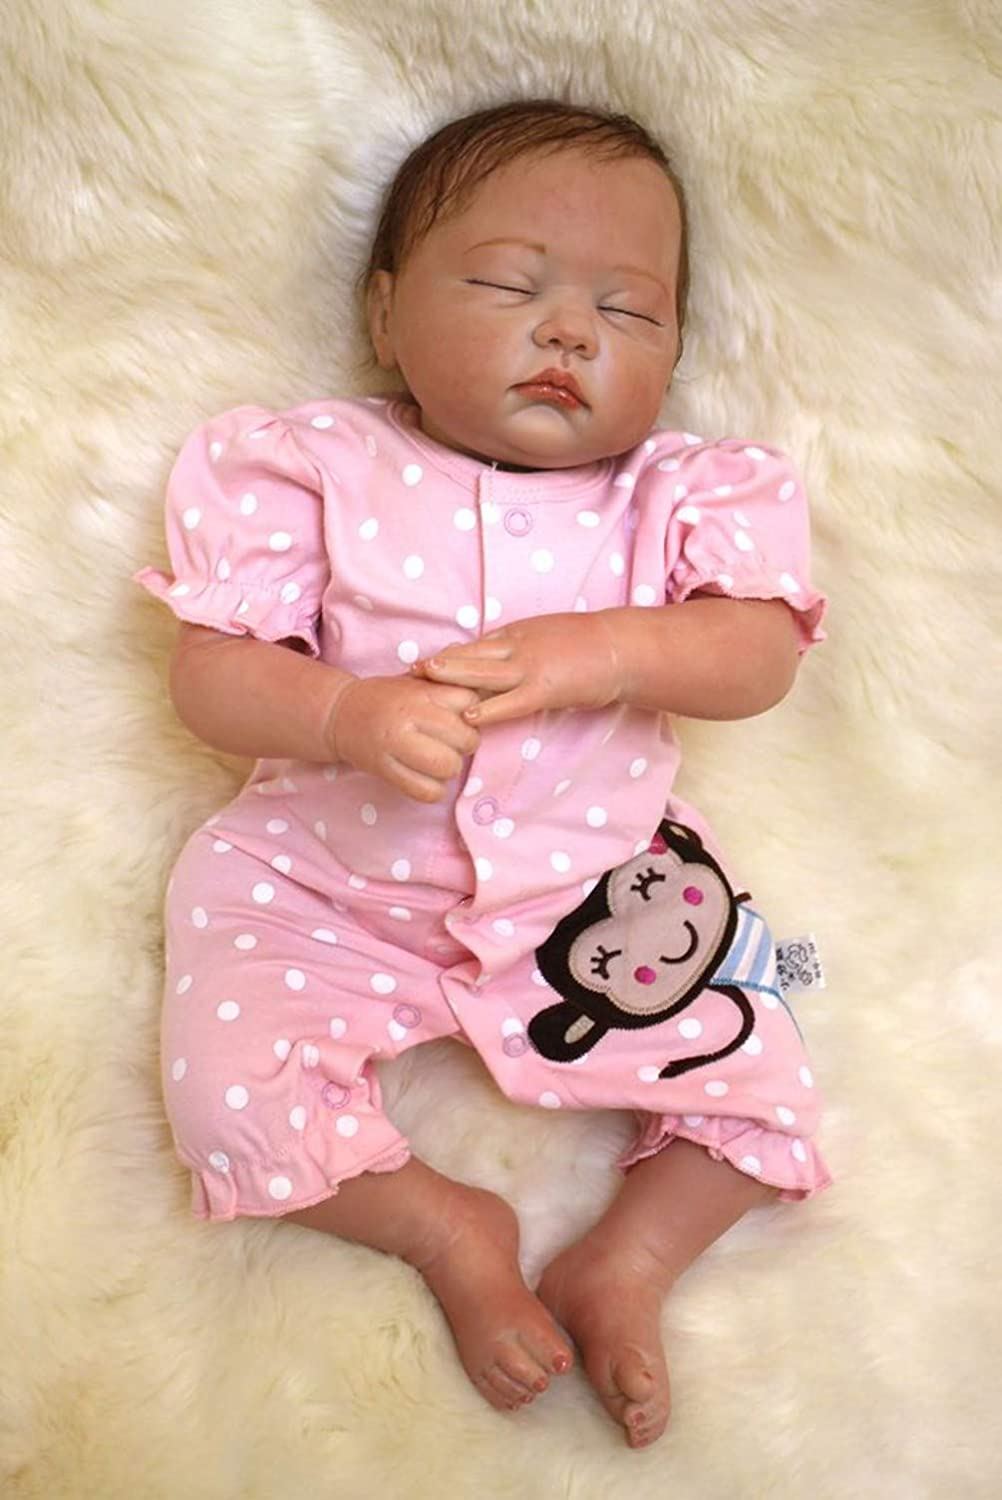 ZIYIUI 19 Inches 48 cm Reborn Dolls Looks Real Sleeping Baby Silicone Vinyl Toddler Girl Handmade Newborn Birthday Gift Kids Toys for age 3 +